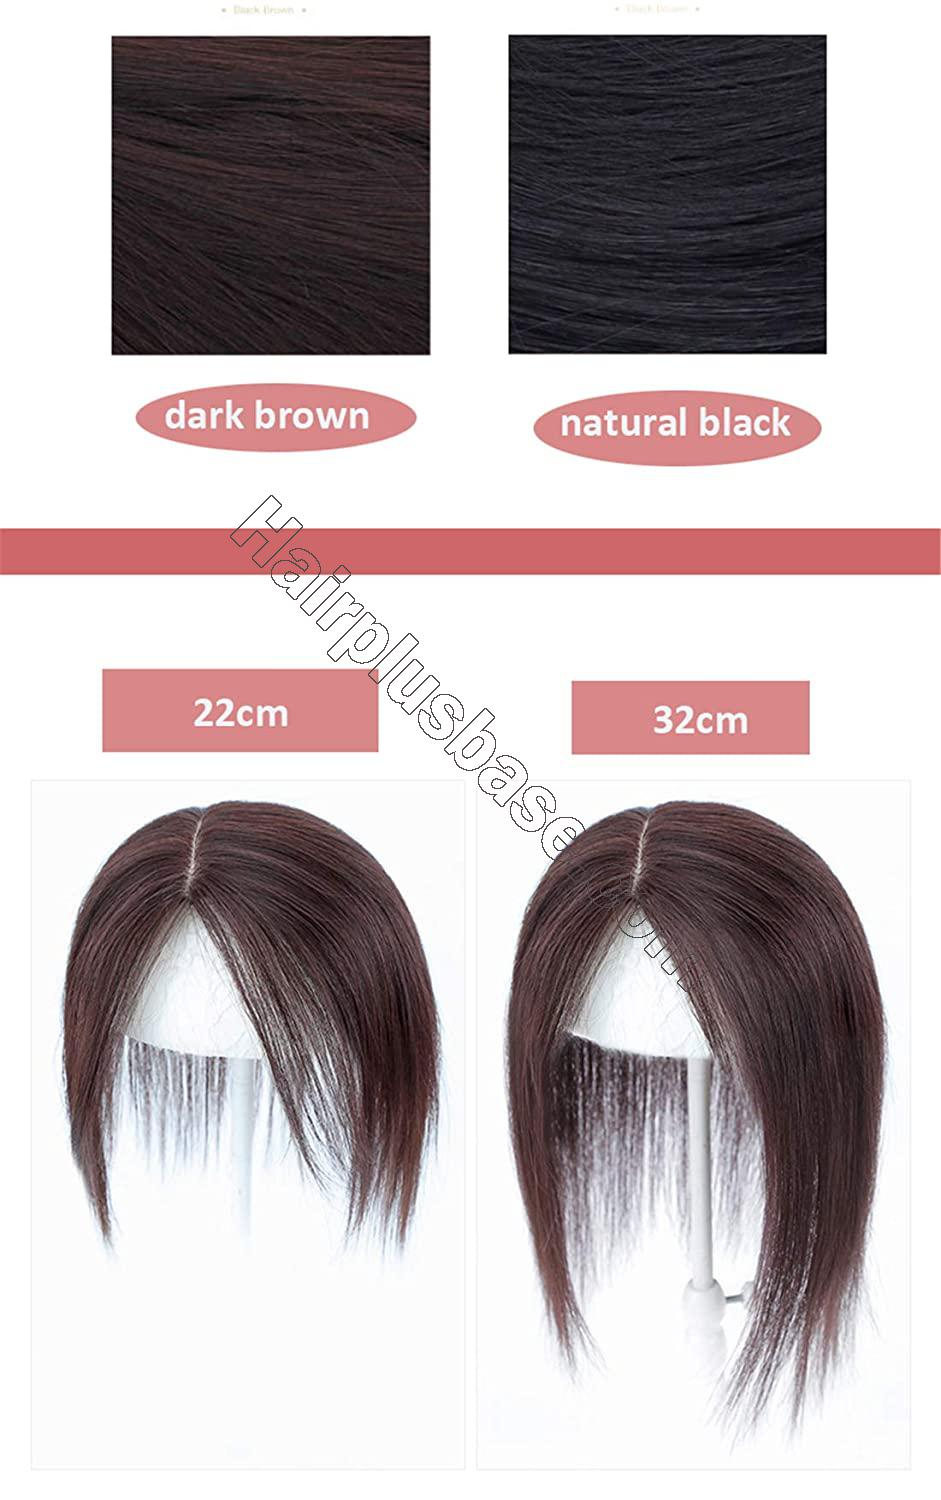 Natural Silk Base Parting Human Hair Toppers for Women with Grey and Thinning Hair, 5 Inch x 5.5 Inch Crown Topper, Left Part 12.6 Inch 6